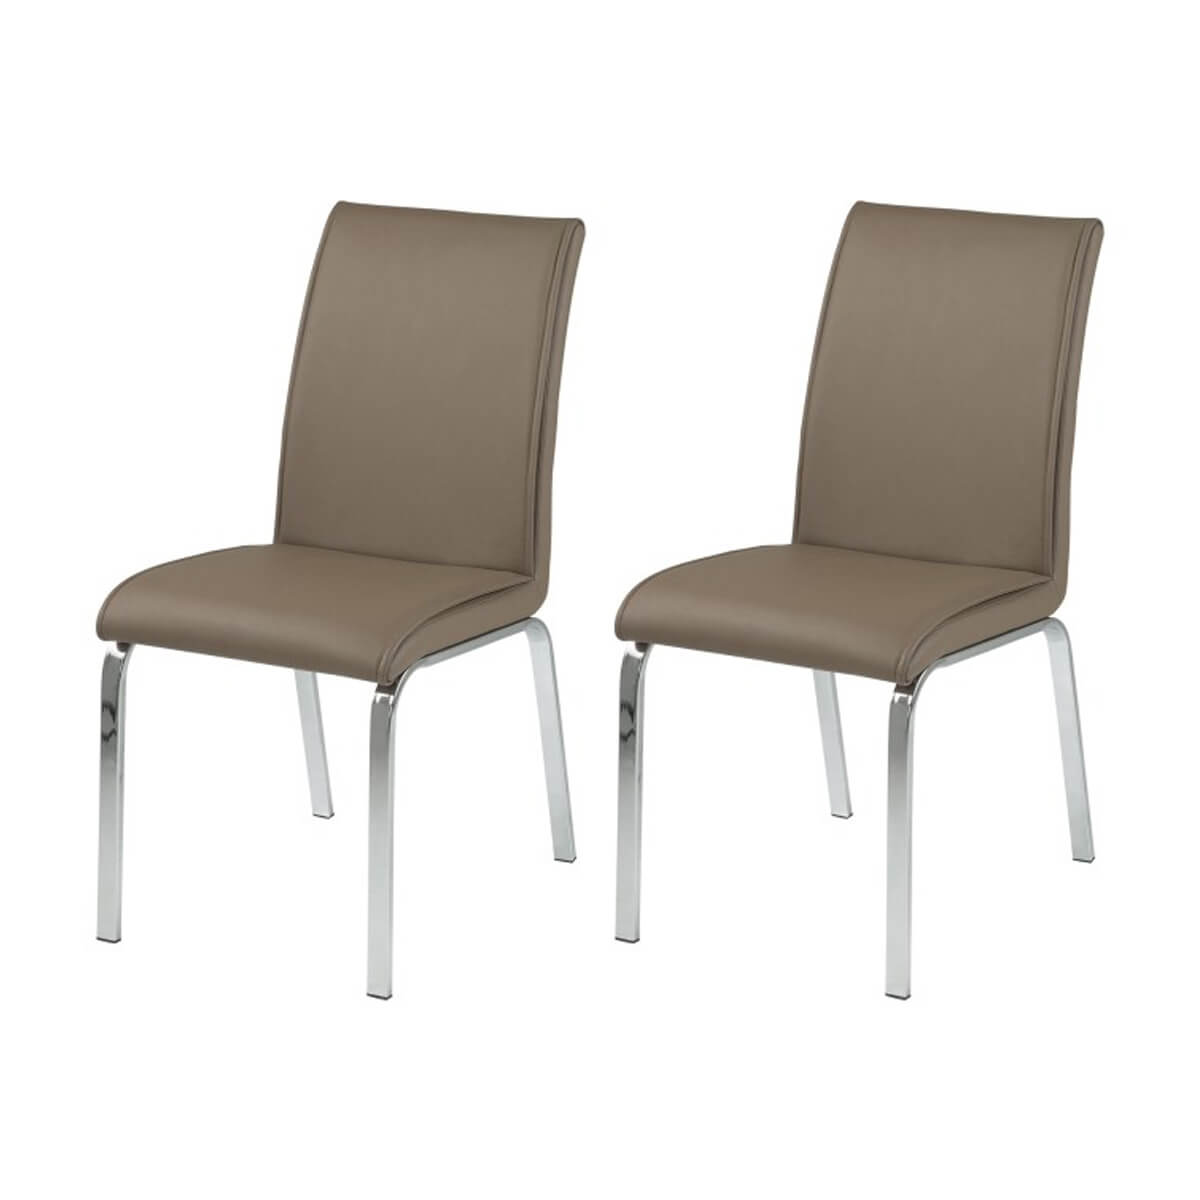 Beige Leather Dining Chairs Leonora Taupe Faux Leather Dining Chairs Pair